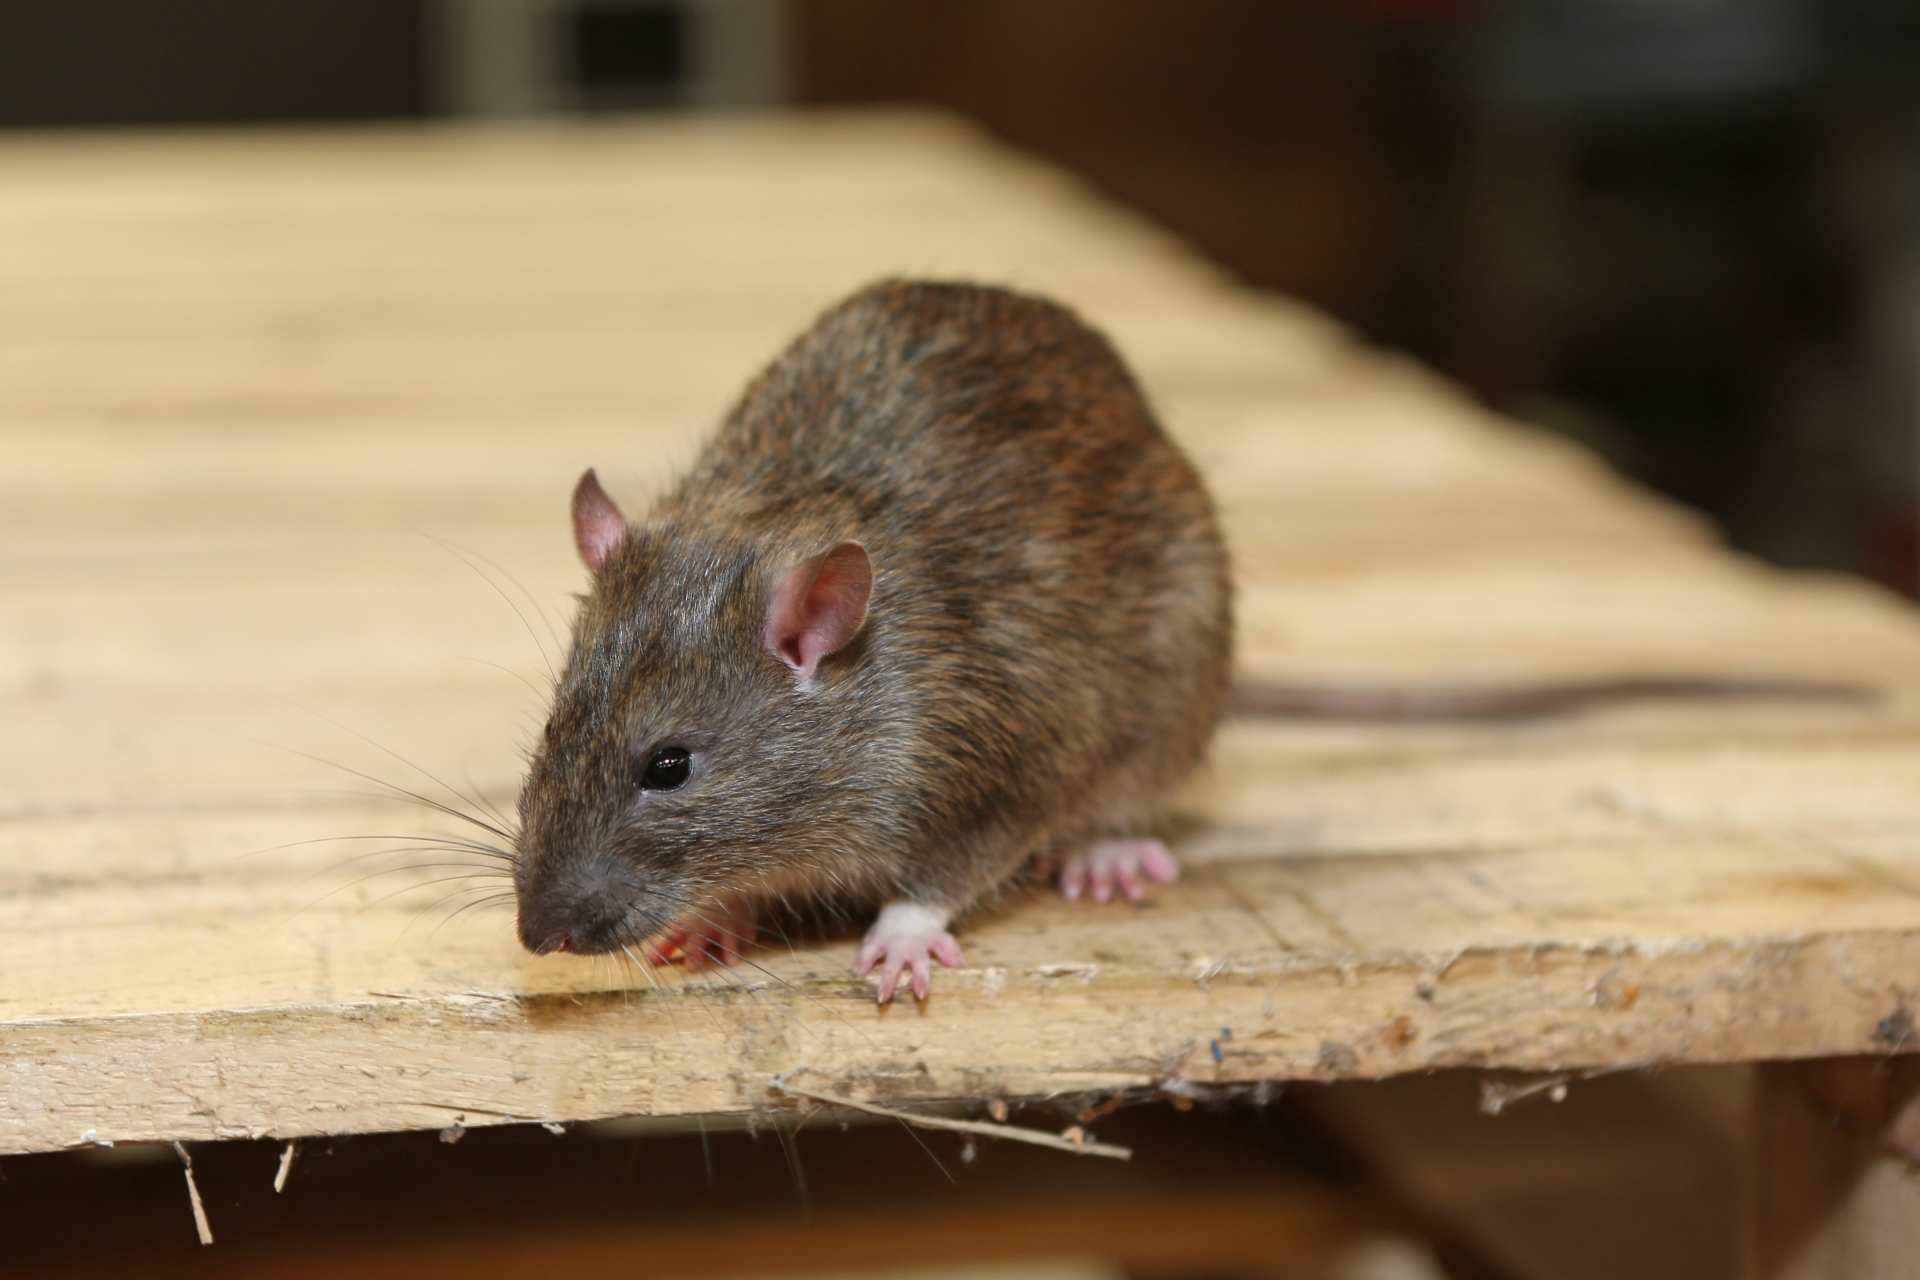 Rat Infestation, Pest Control in Edgware, Burnt Oak, HA8. Call Now 020 8166 9746